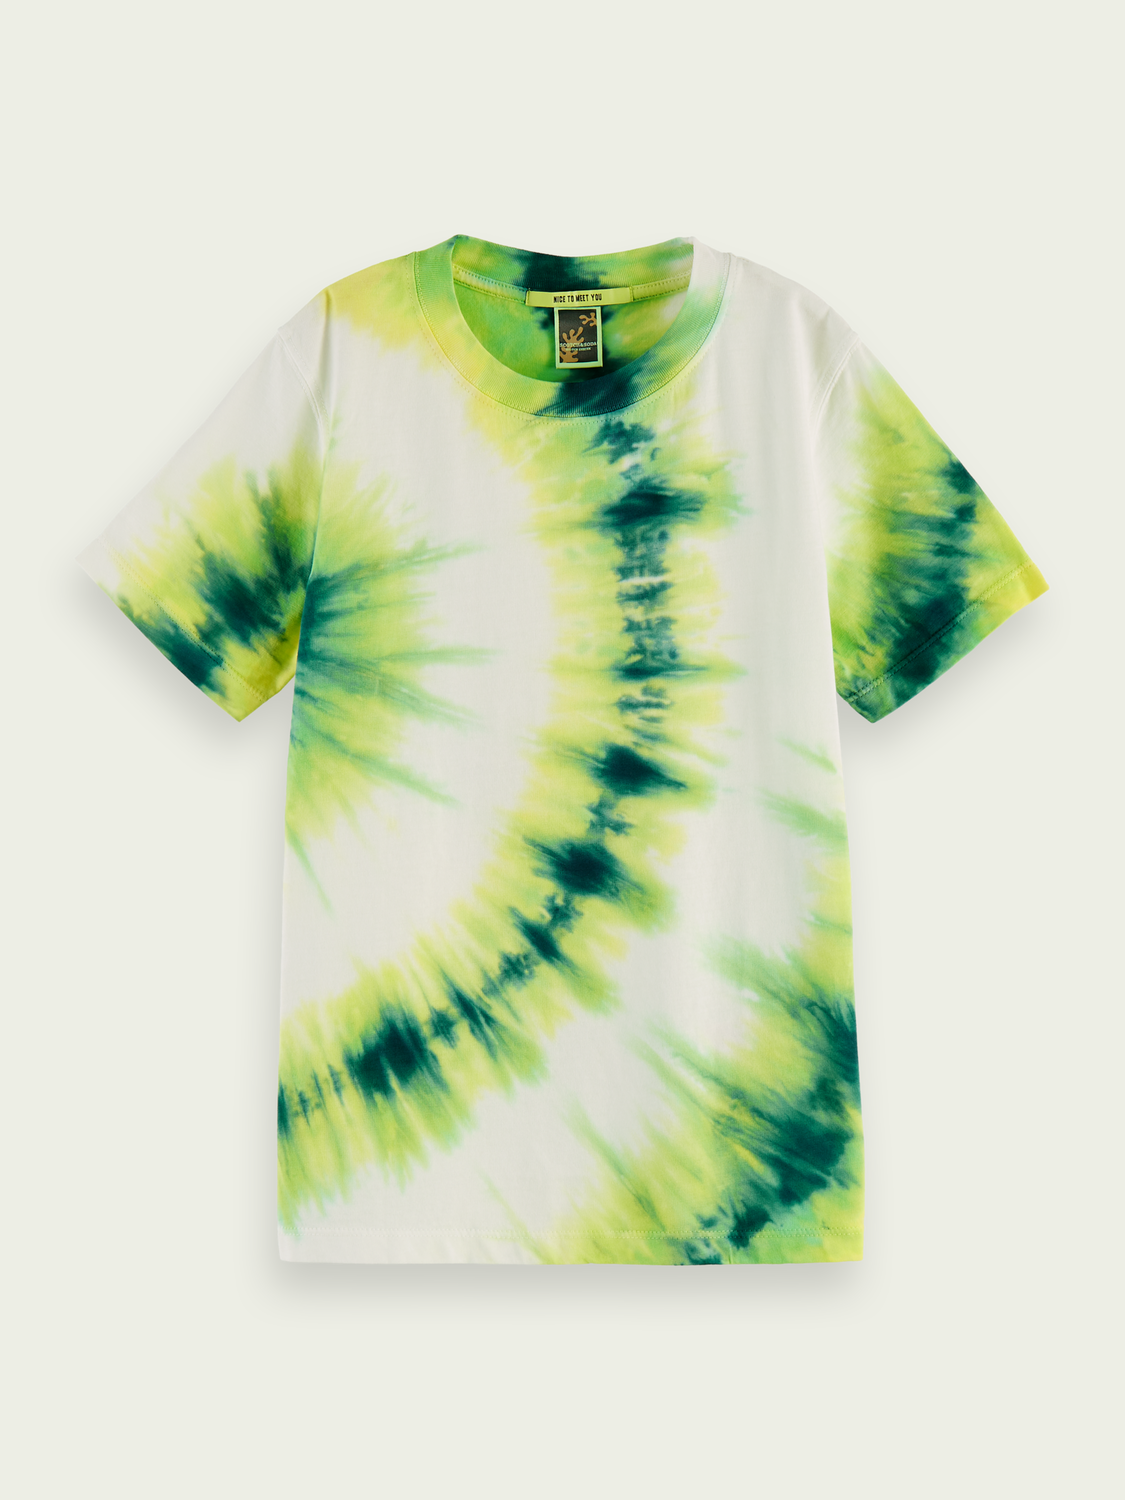 Kids Tie-dye organic cotton T-shirt